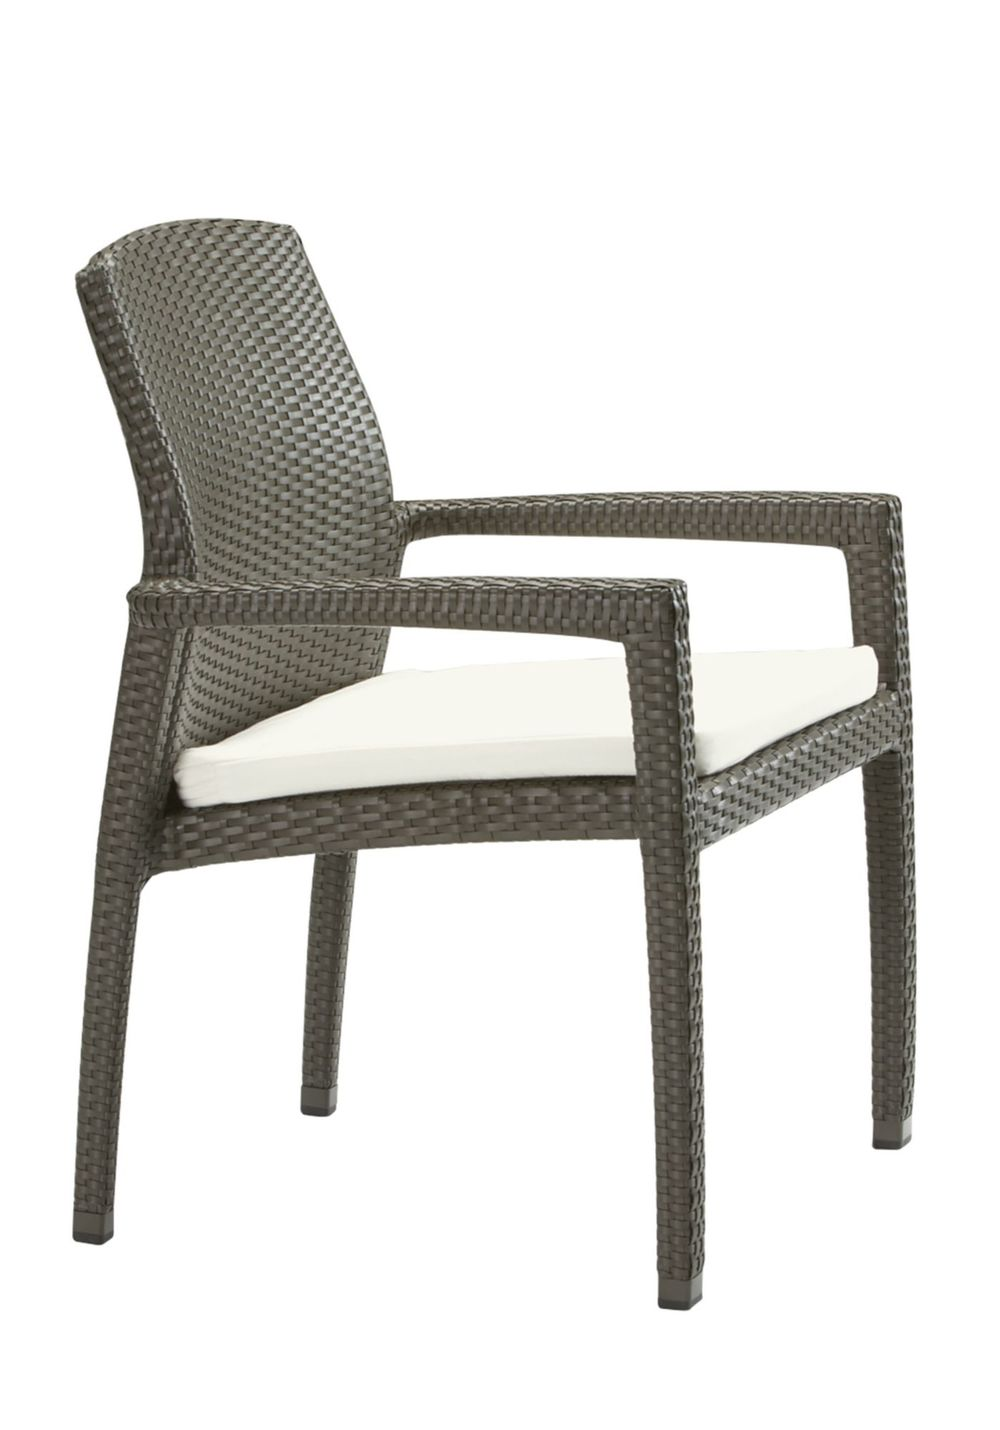 Tropitone Furniture - Dining Chair with Seat Pad